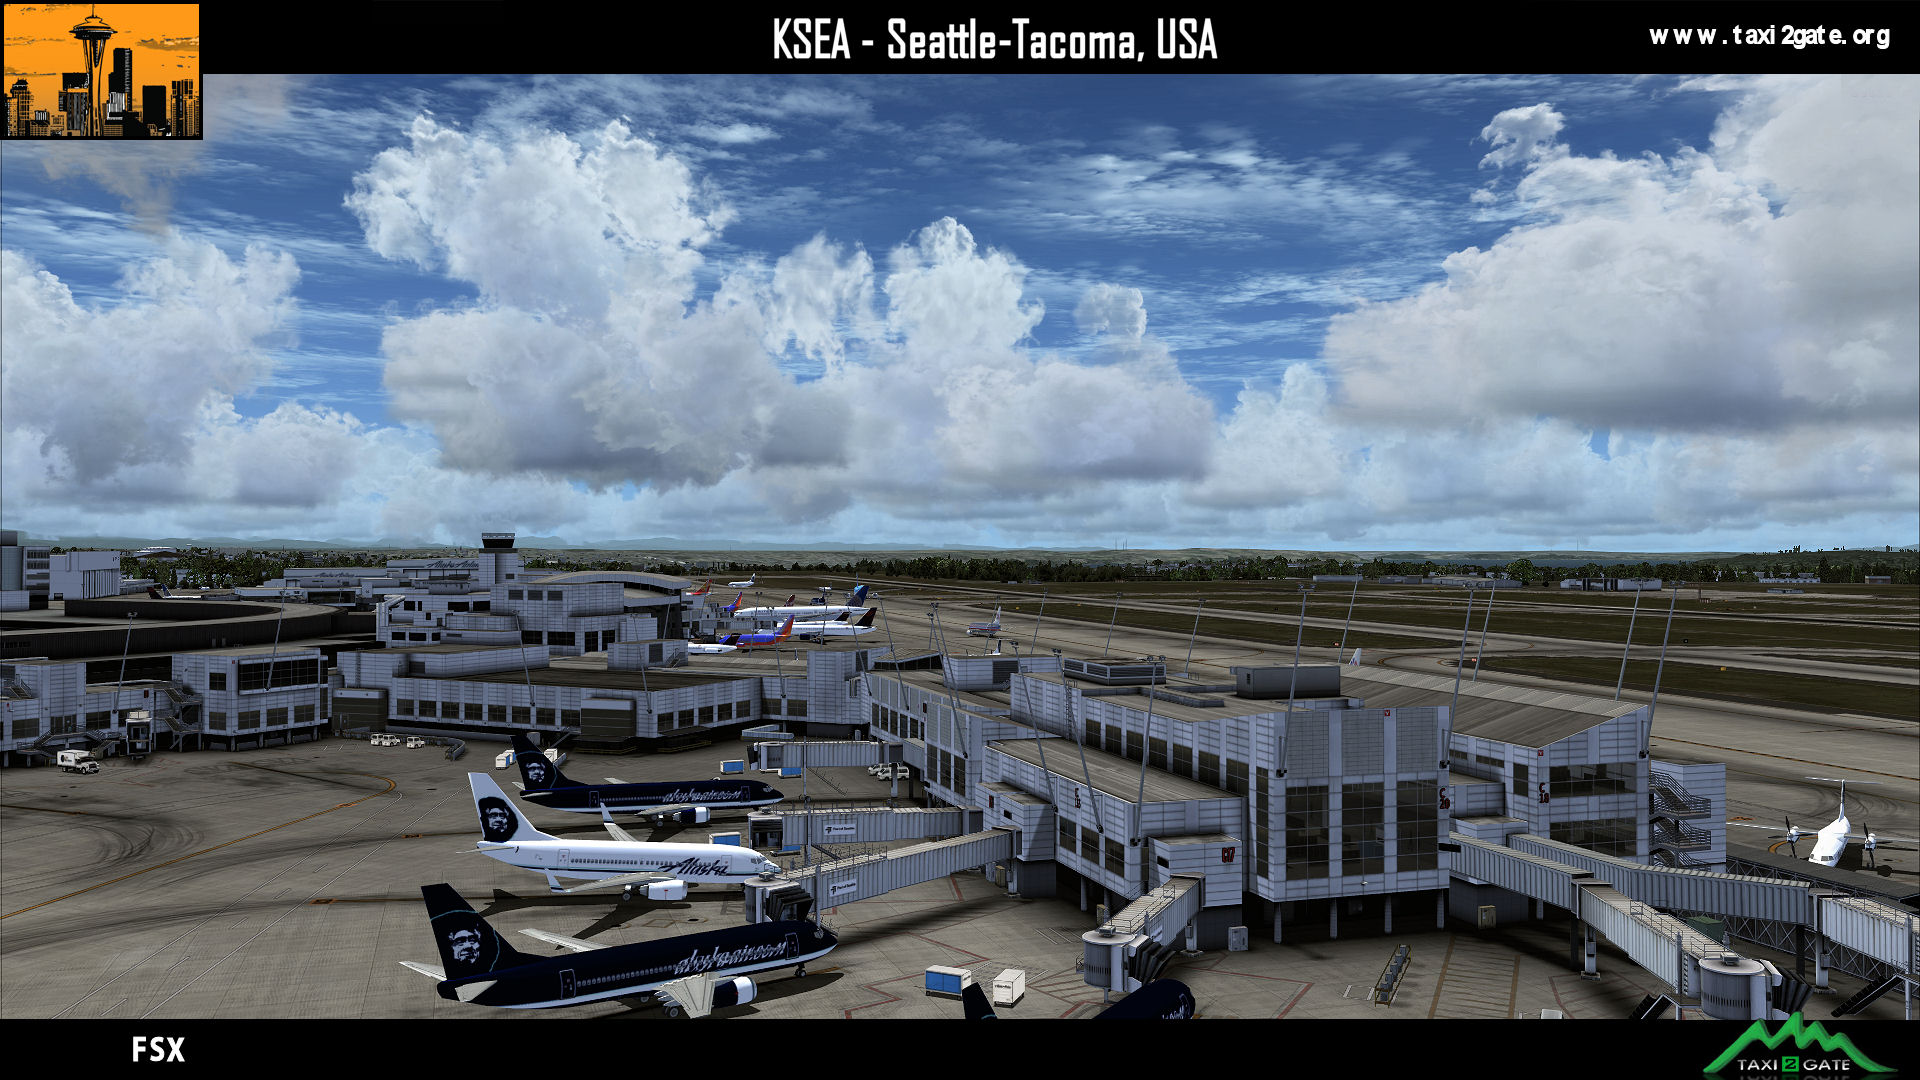 TAXI2GATE - SEATTLE-TACOMA INTERNATIONAL AIRPORT KSEA FSX P3D